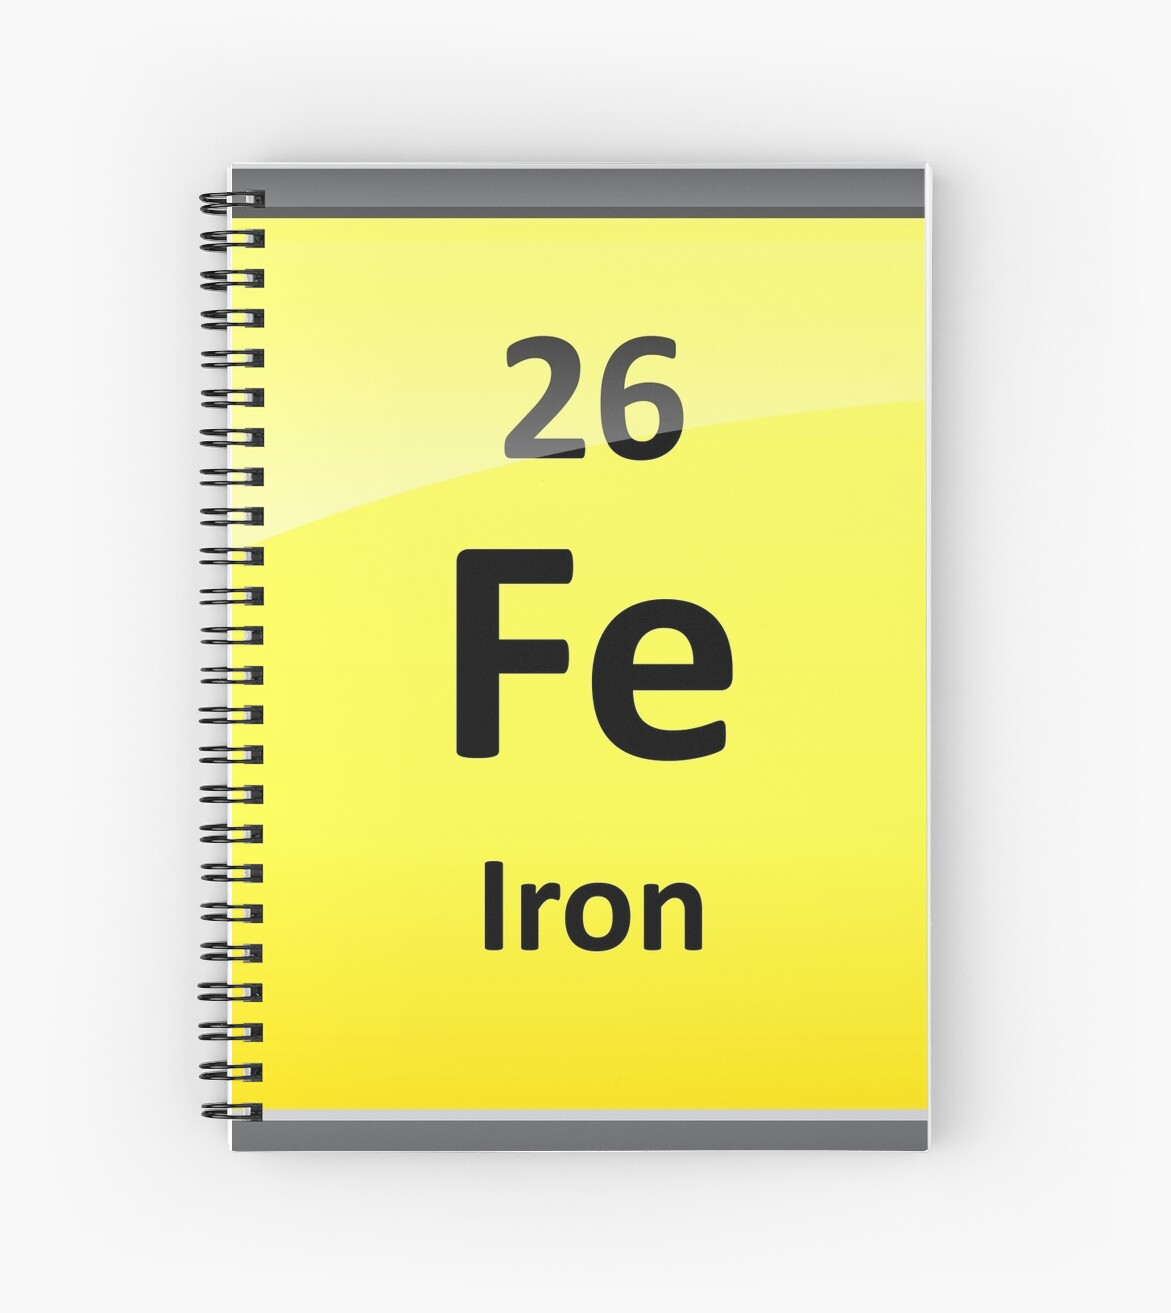 Iron symbol in periodic table image collections periodic table periodic table symbol for iron images periodic table images iron element symbol periodic table spiral notebooks gamestrikefo Image collections